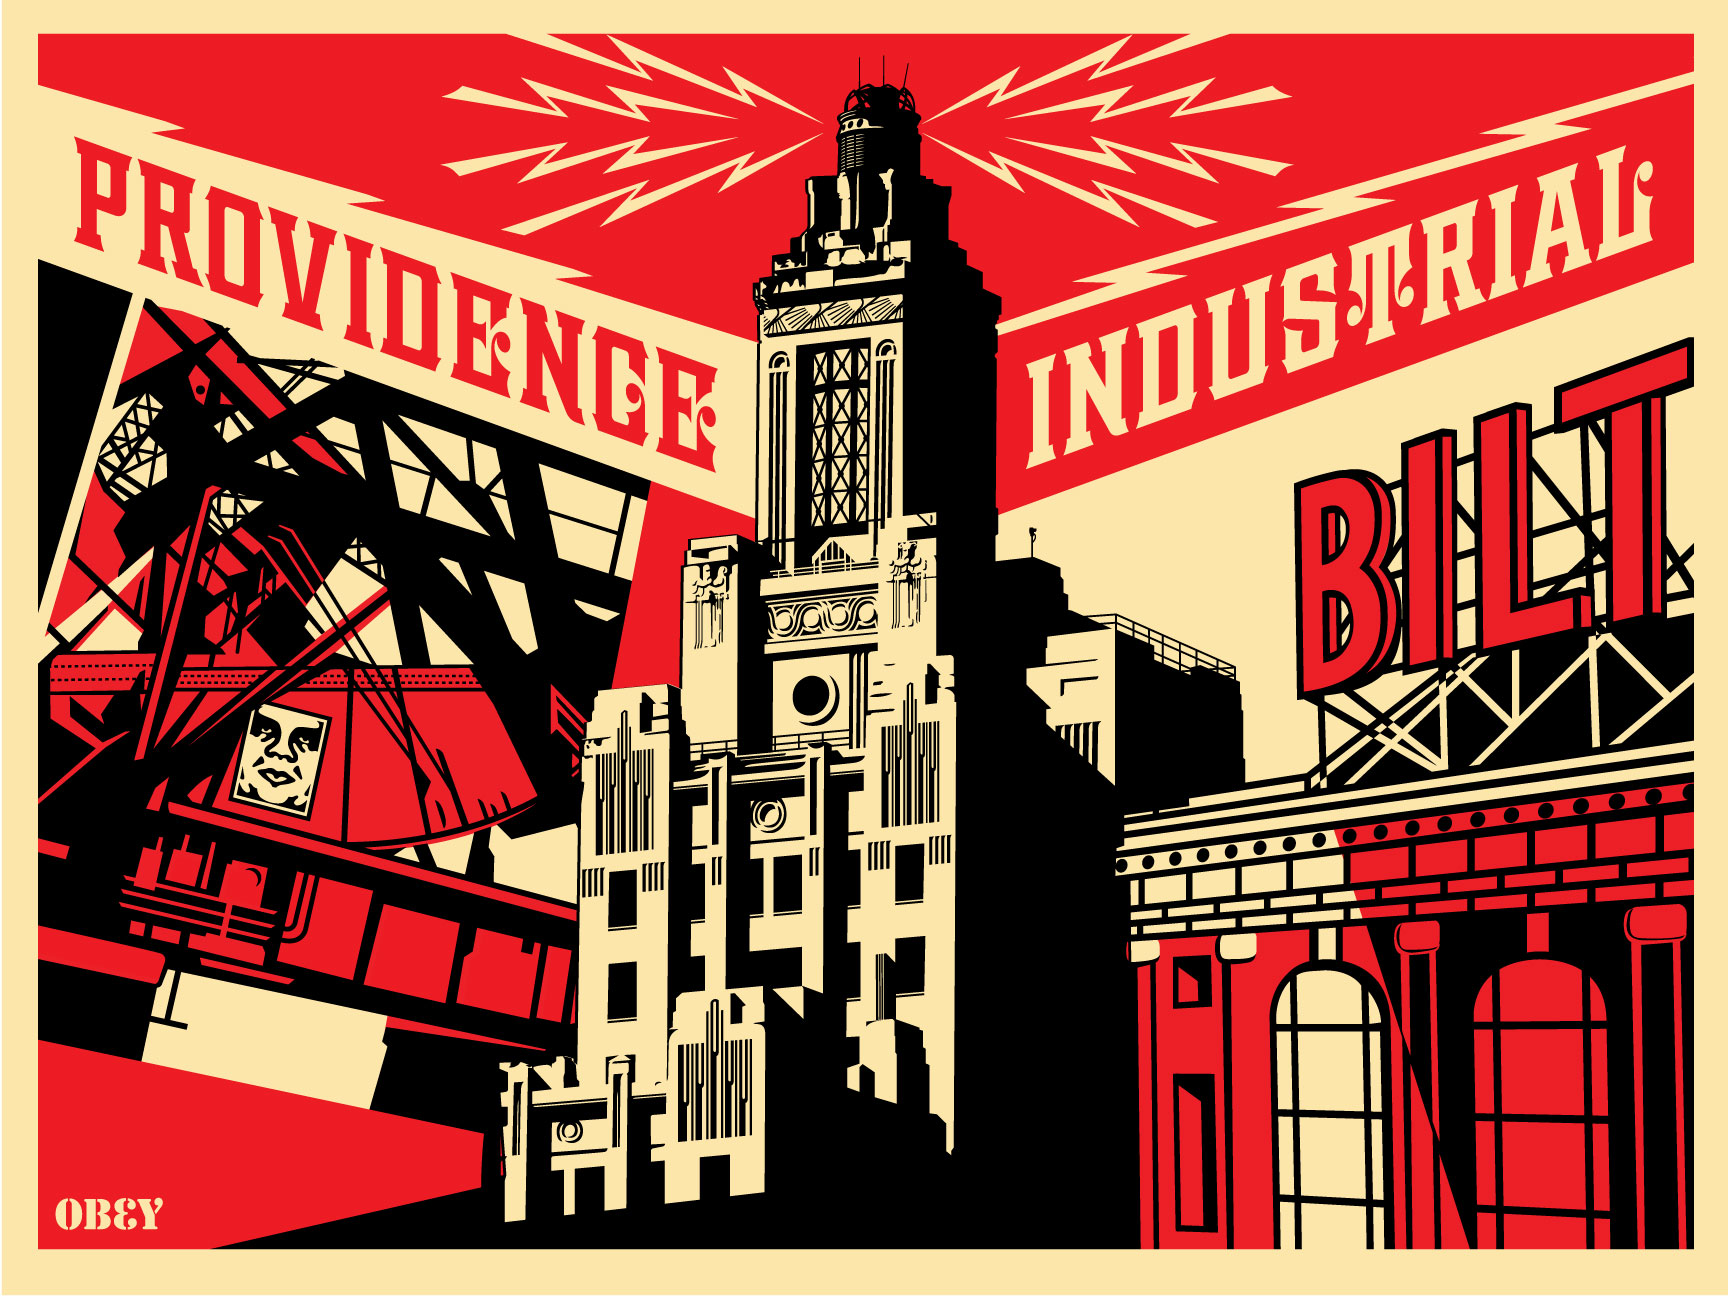 providence industrial x foo fest 2010 x as220 obey giant. Black Bedroom Furniture Sets. Home Design Ideas